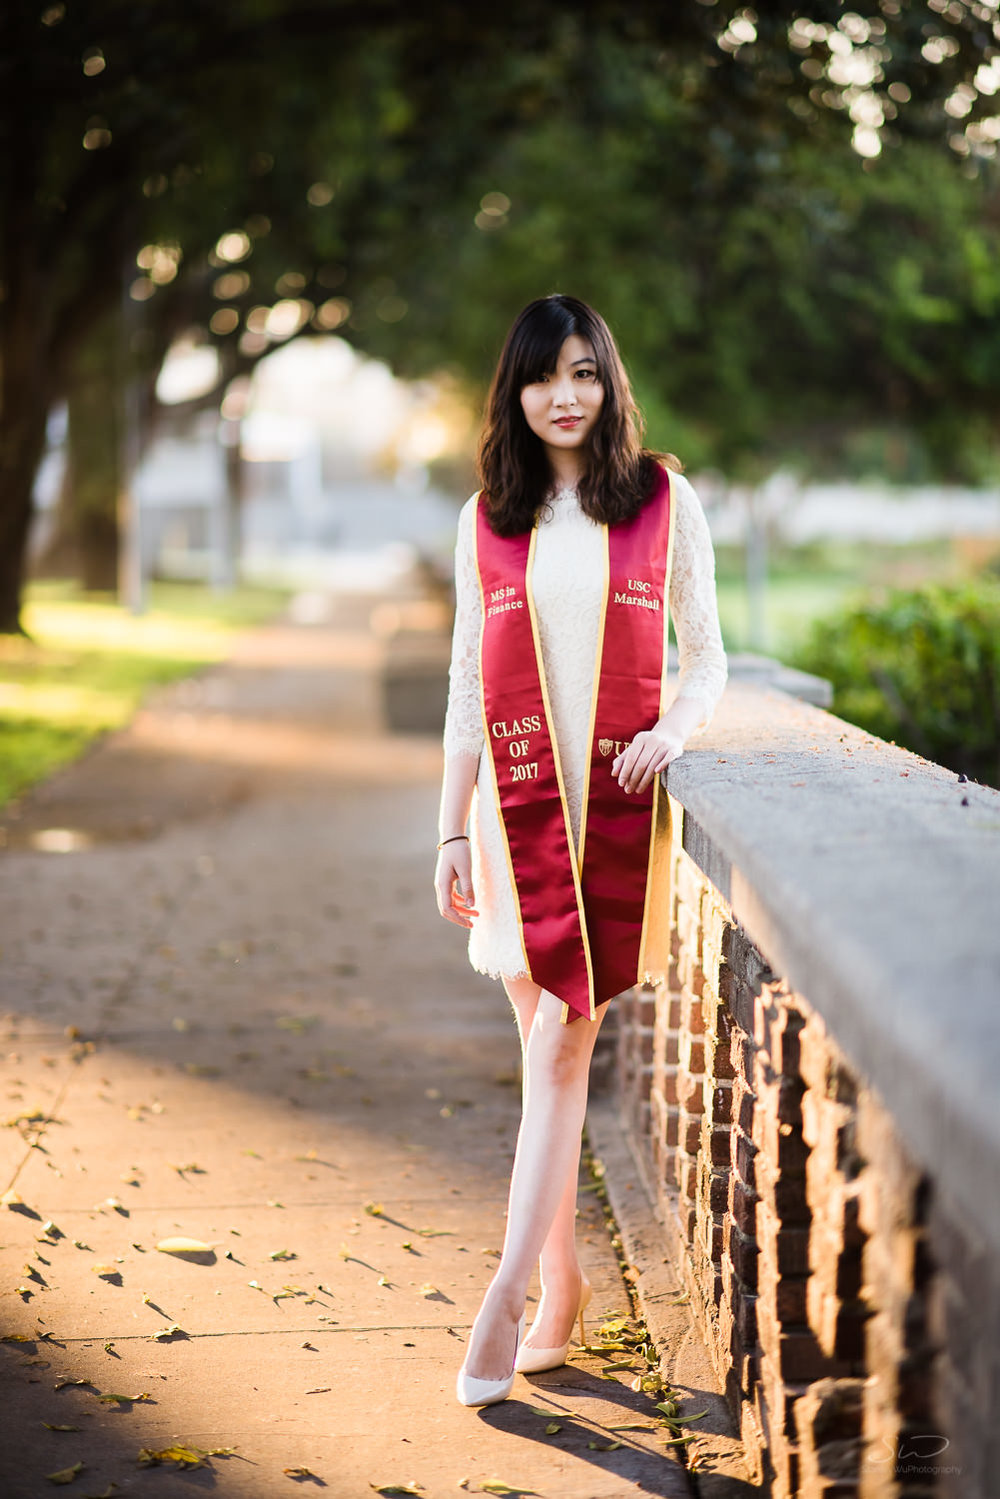 Portrait at Rose Garden at USC. Best graduation portrait photography, Los Angeles.